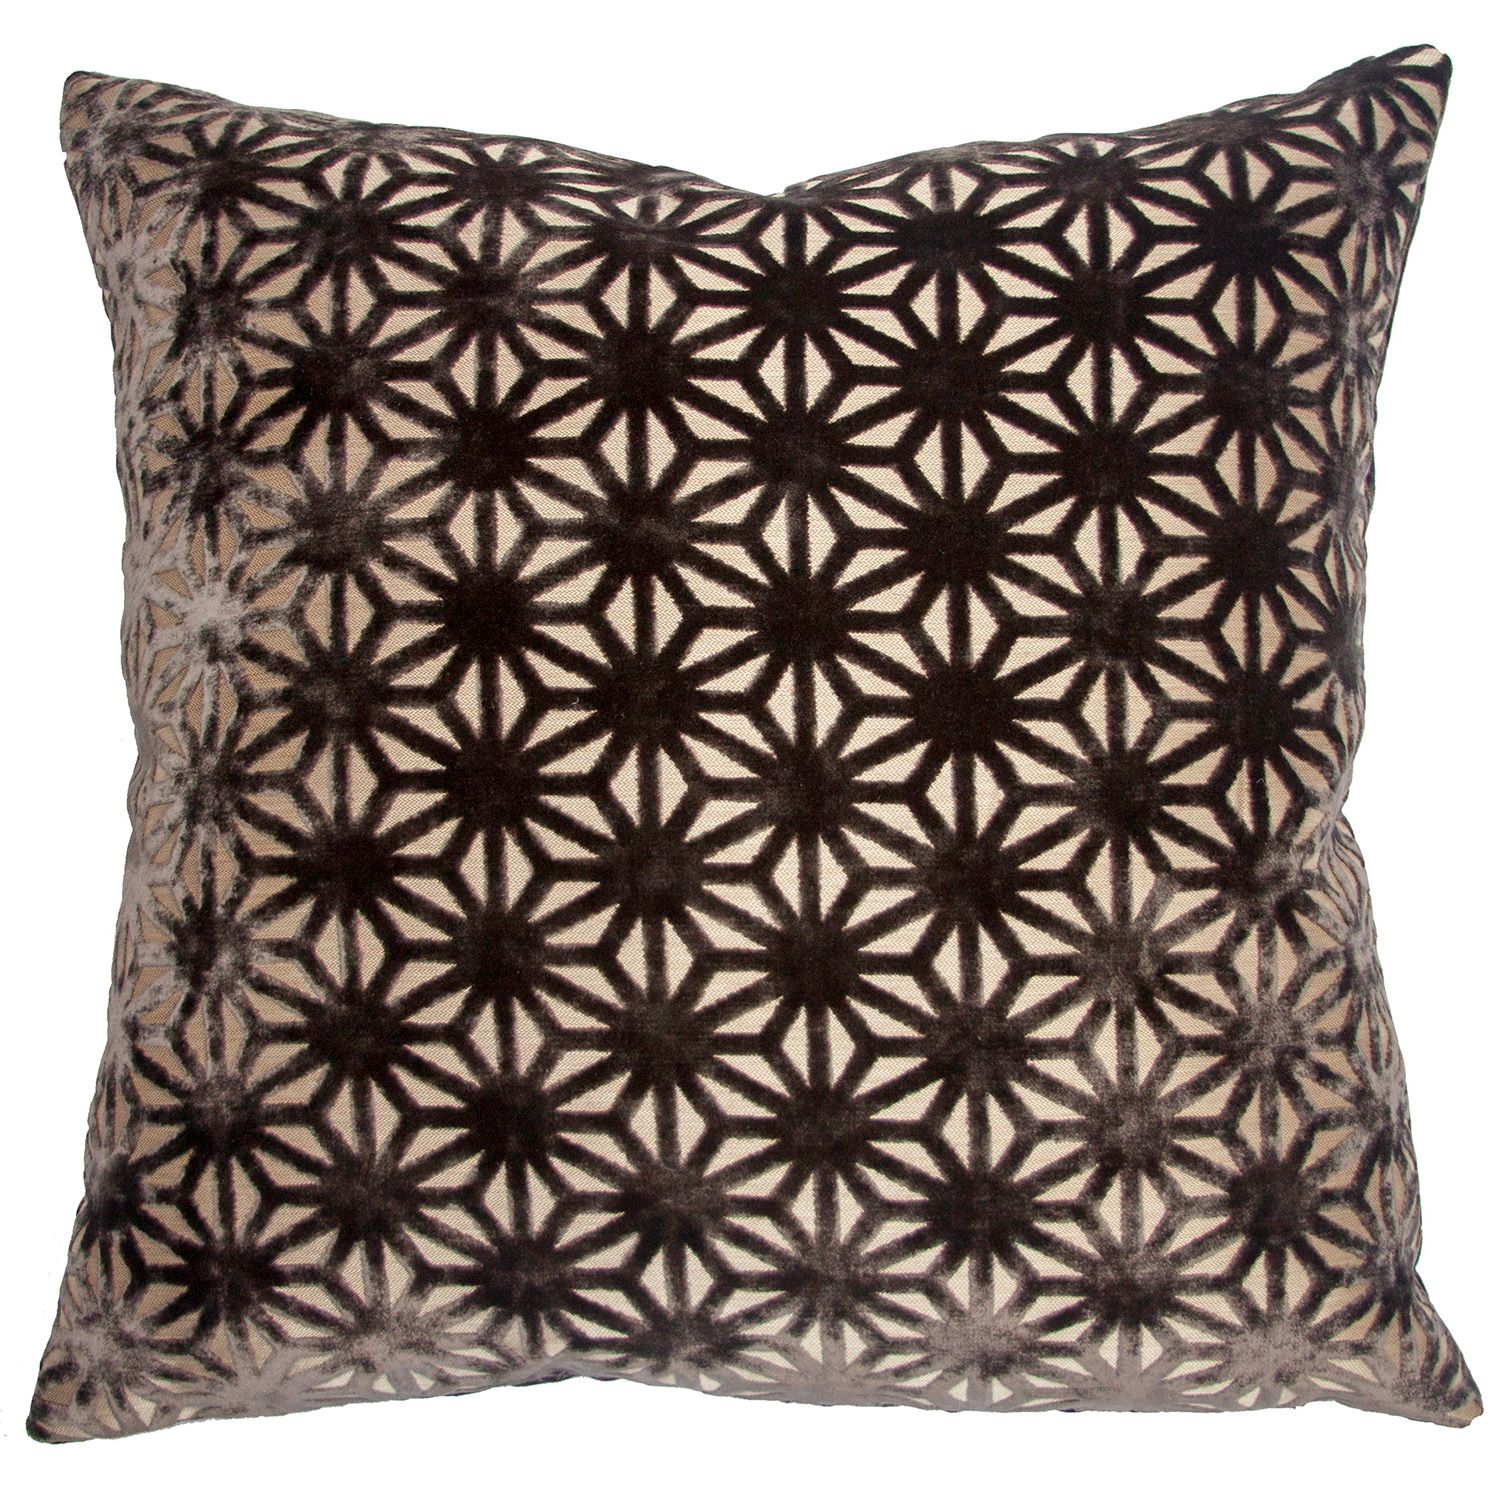 The Square Feathers Milan Stars throw pillow awakens neutral tones ... - The Square Feathers Milan Stars throw pillow awakens neutral tones with  bold graphic design. A